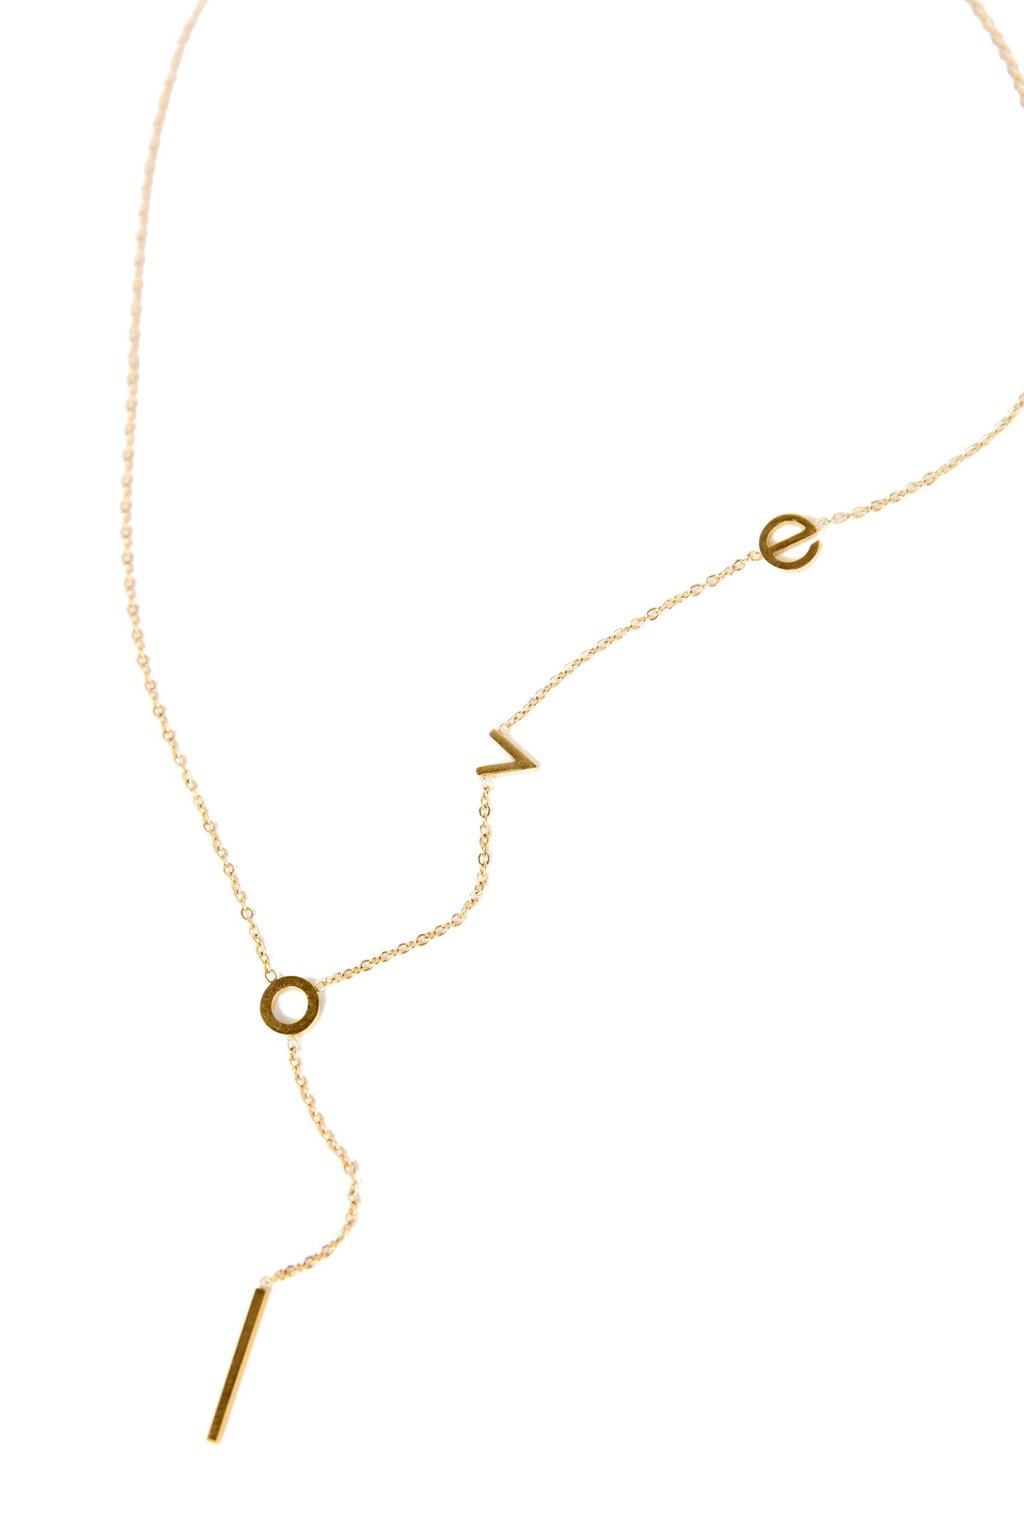 Chainmail Necklace by J.ING women's fashion and accessories